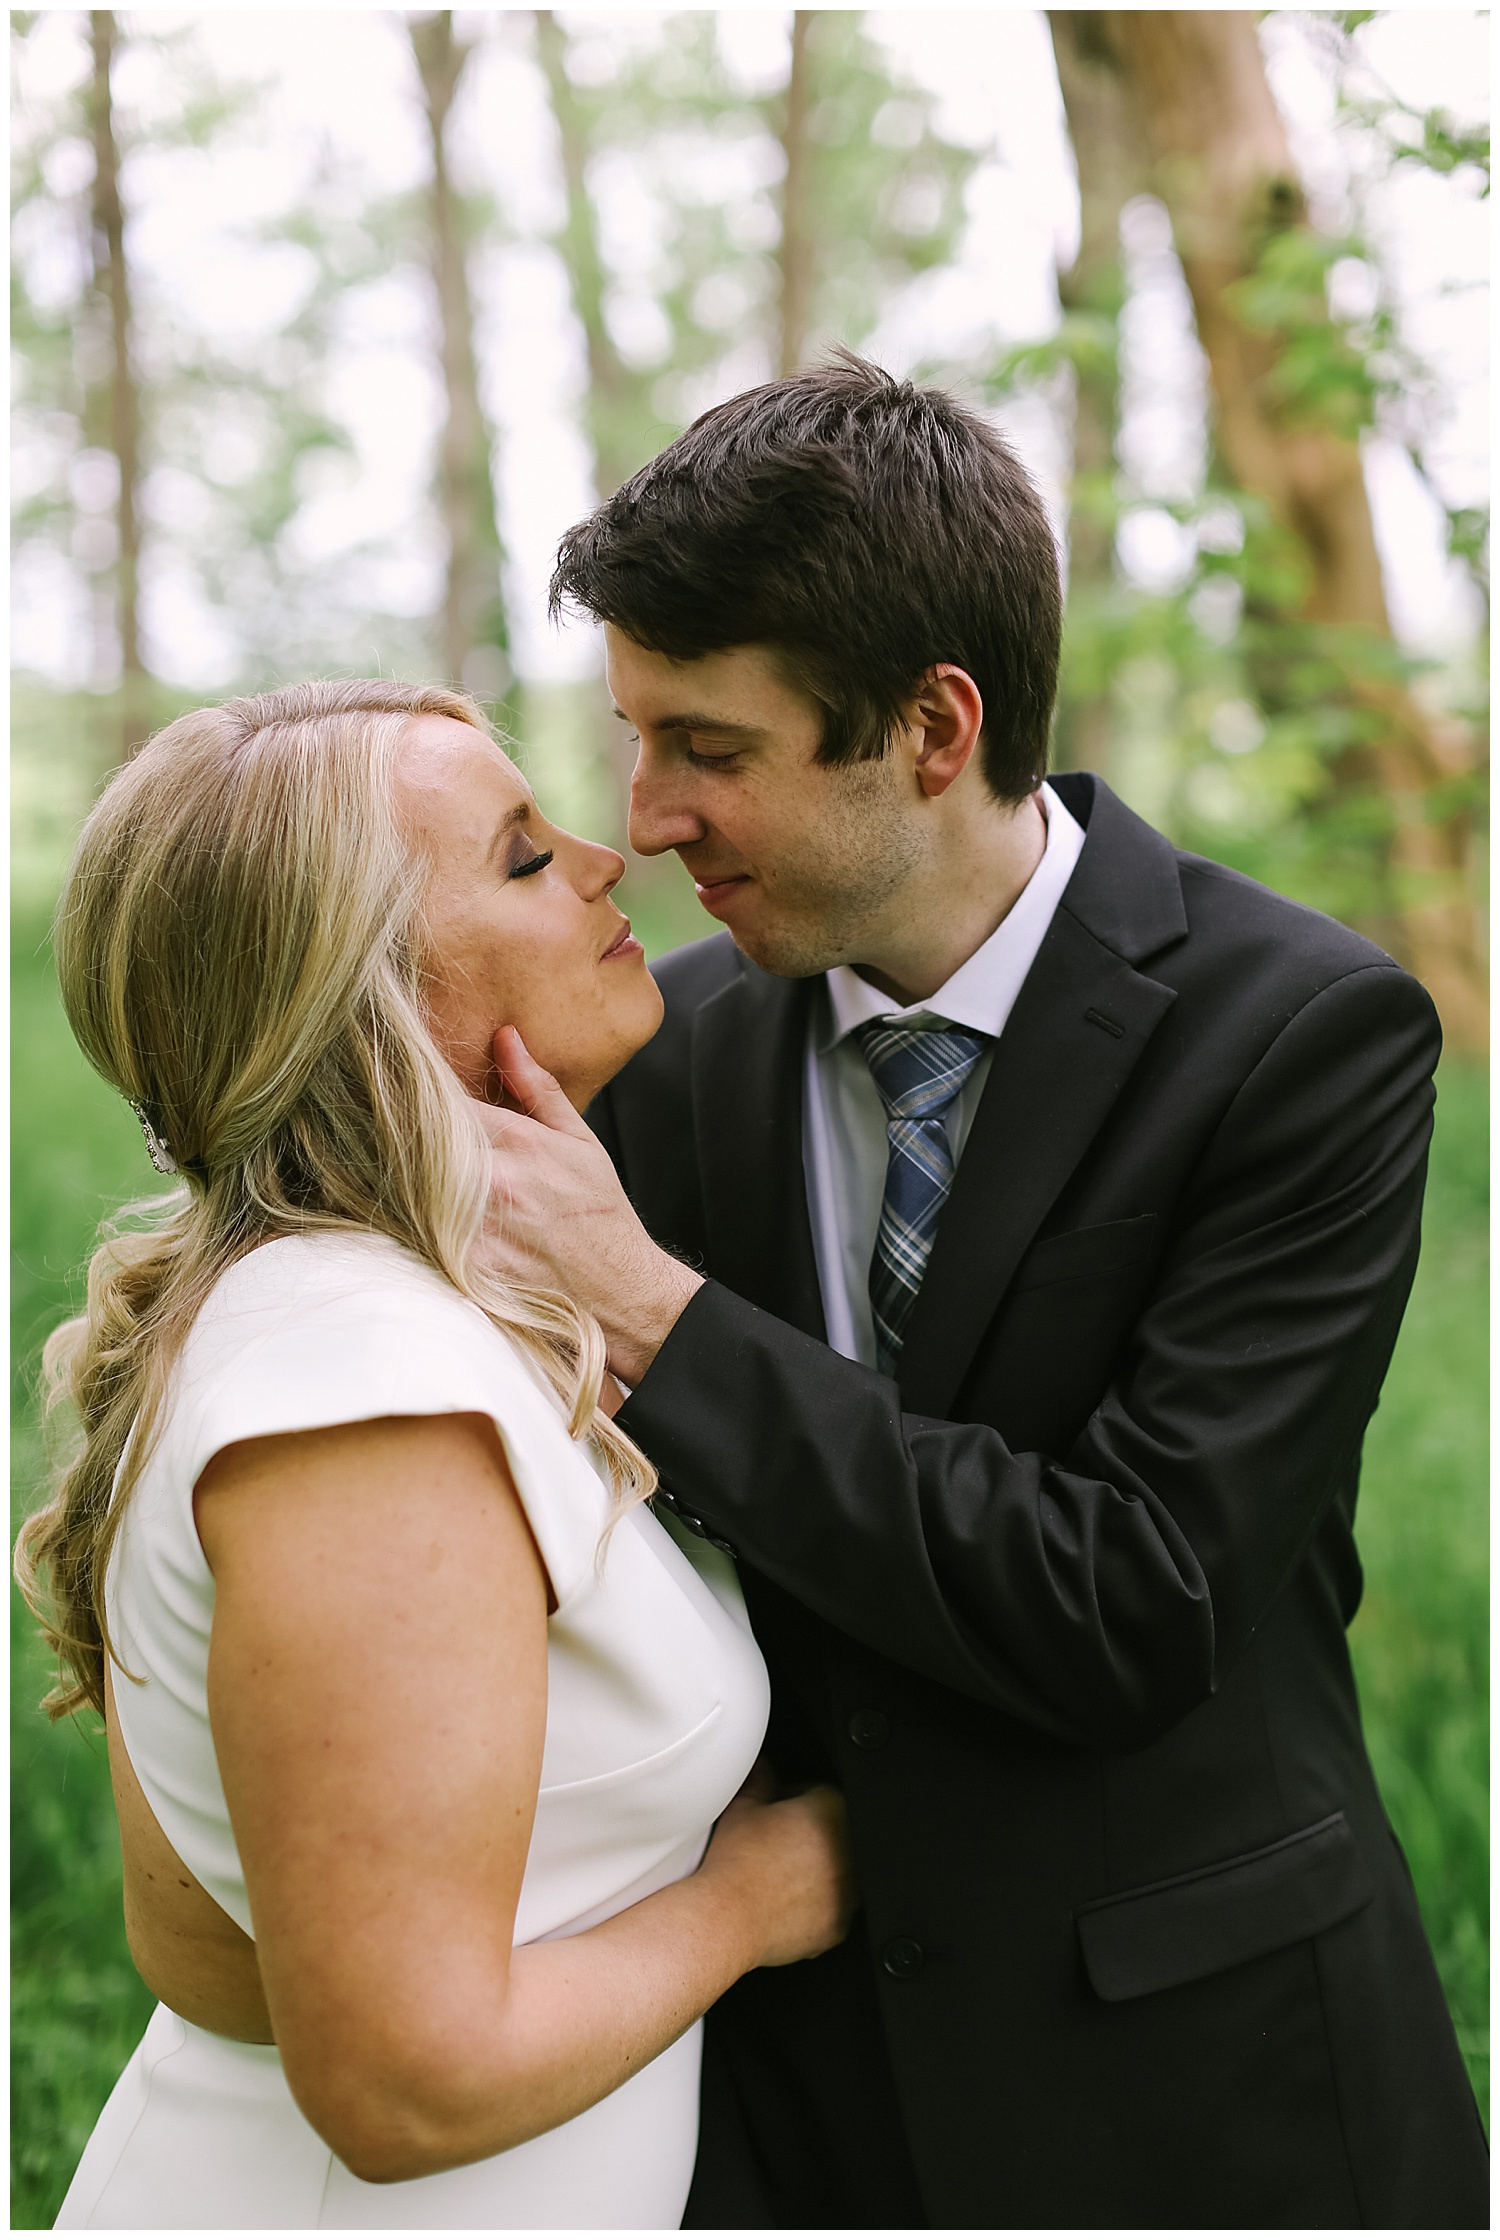 trent.and.kendra.photography.elopement.intimate.wedding-53.jpg